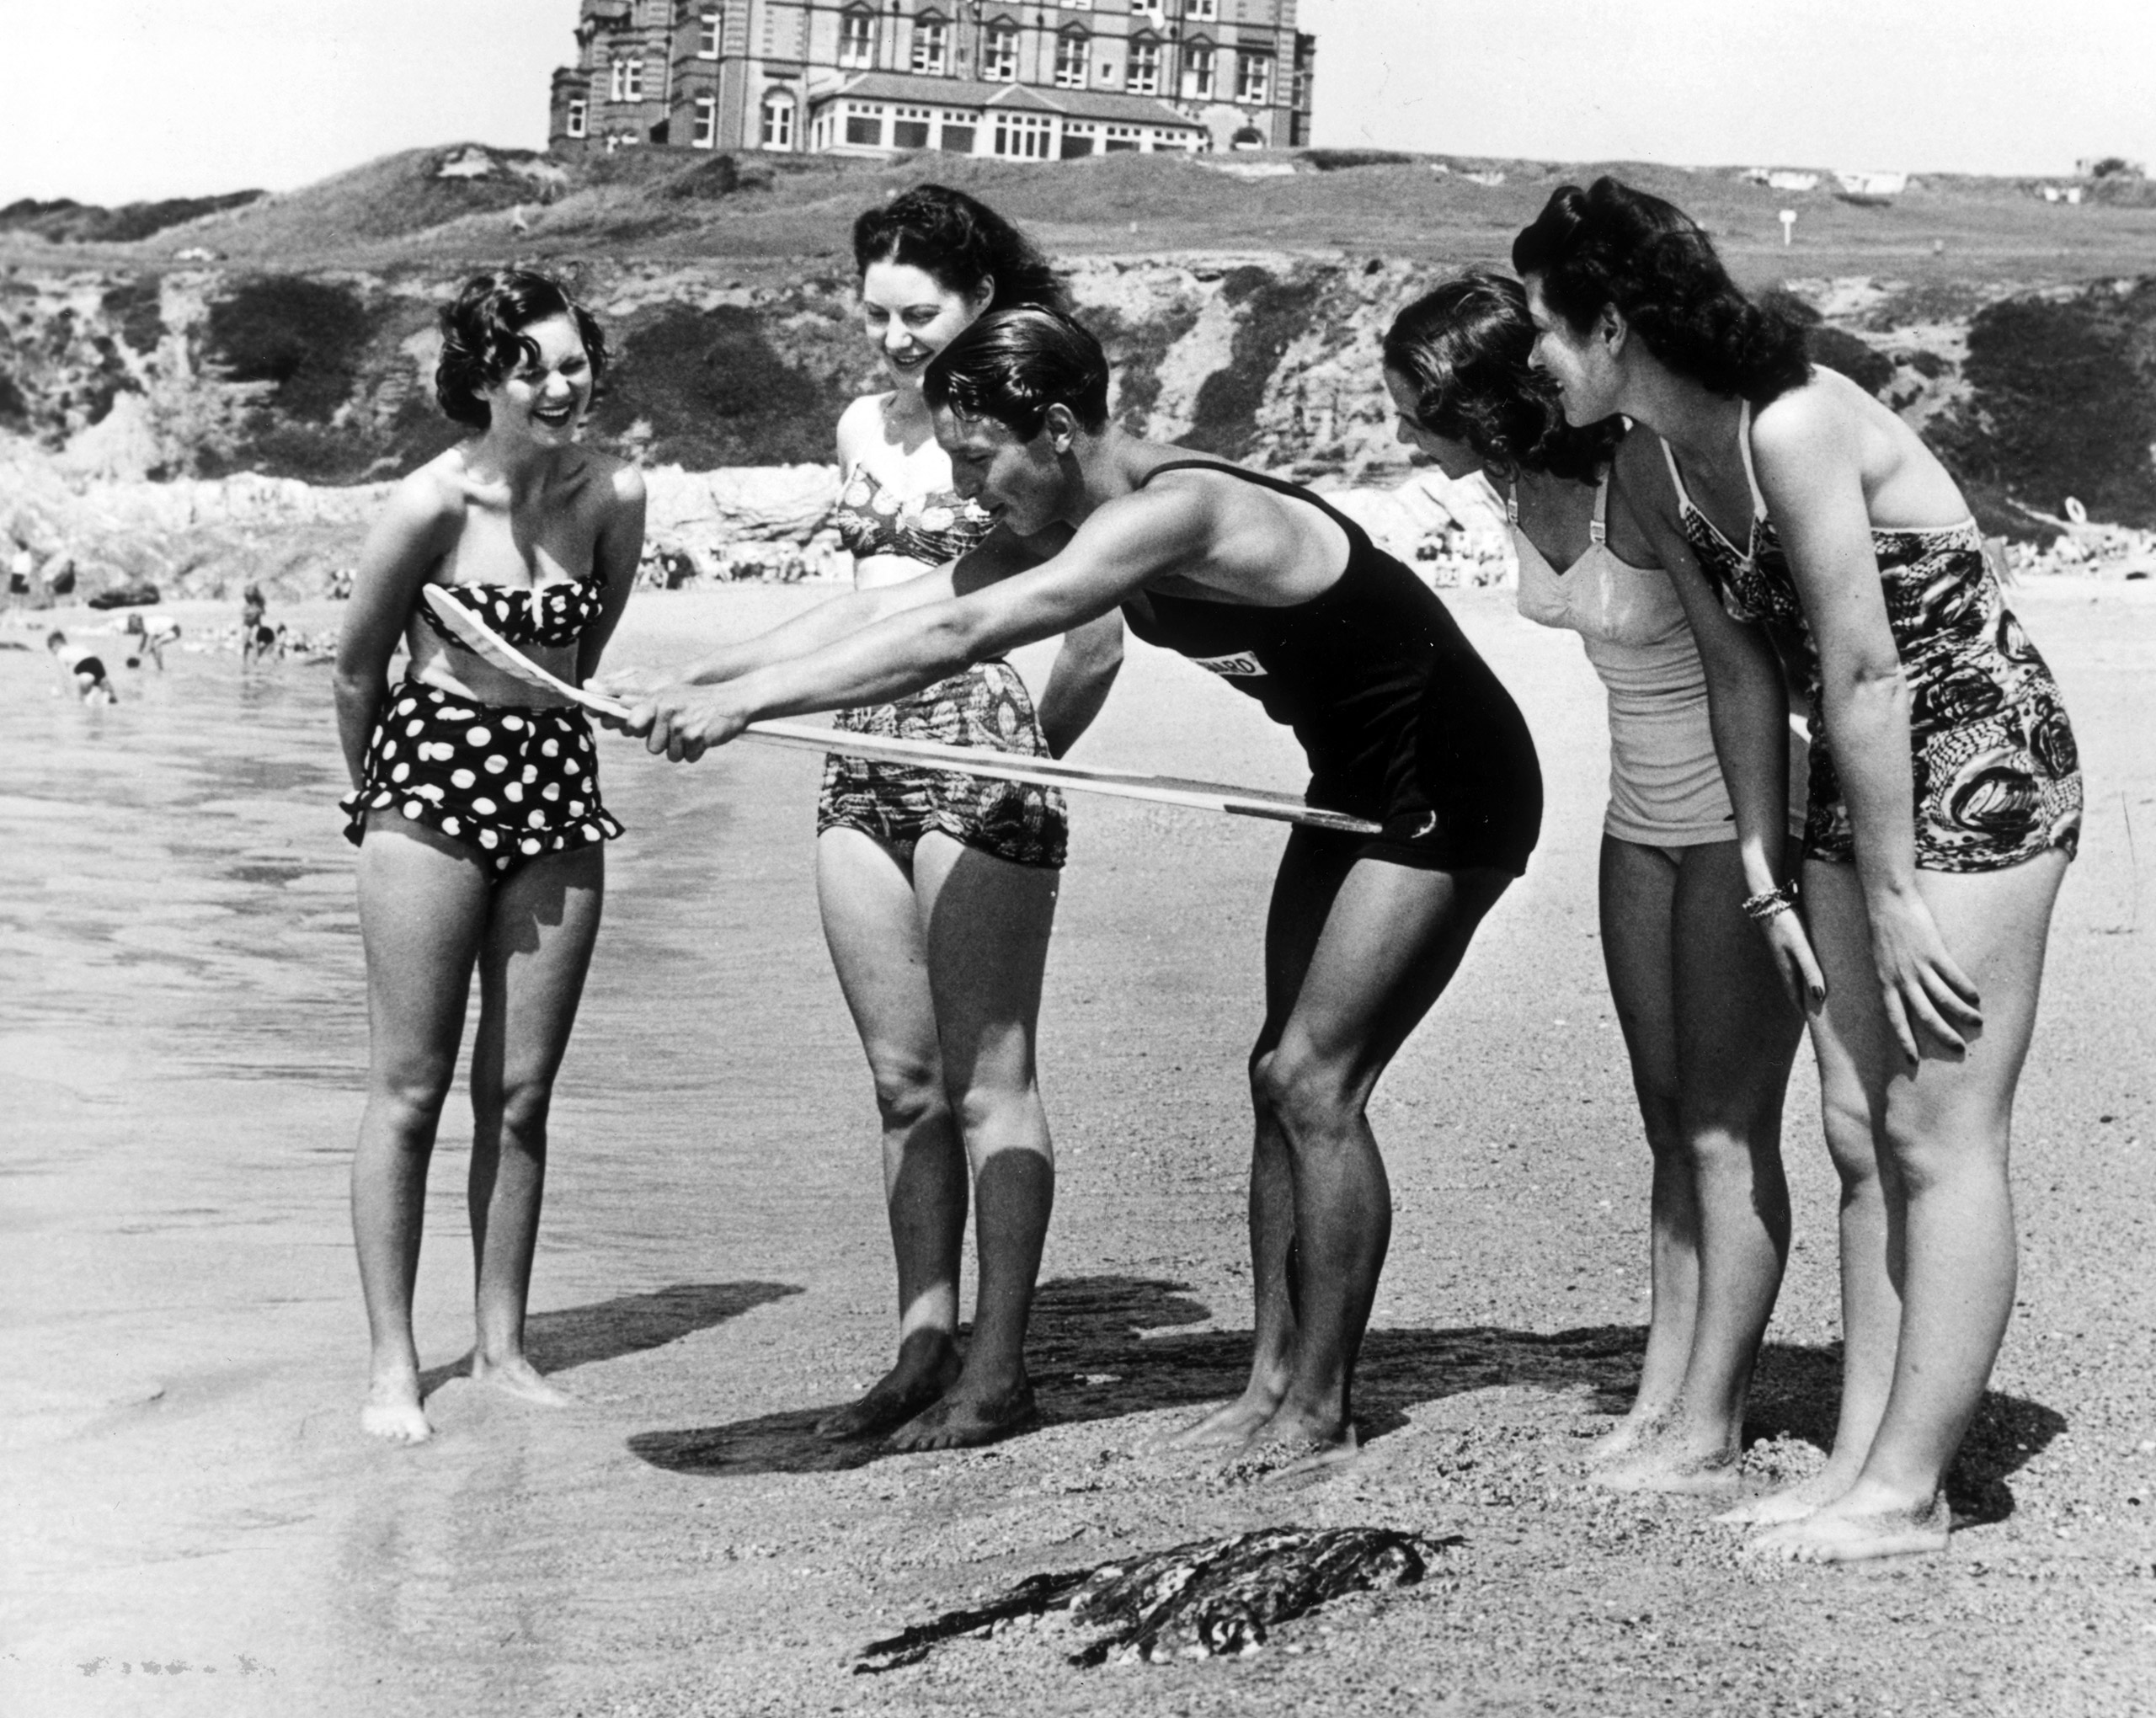 A lifeguard teaches four women how to handle a surfboard on the beach at Newquay in Cornwall, 1950.